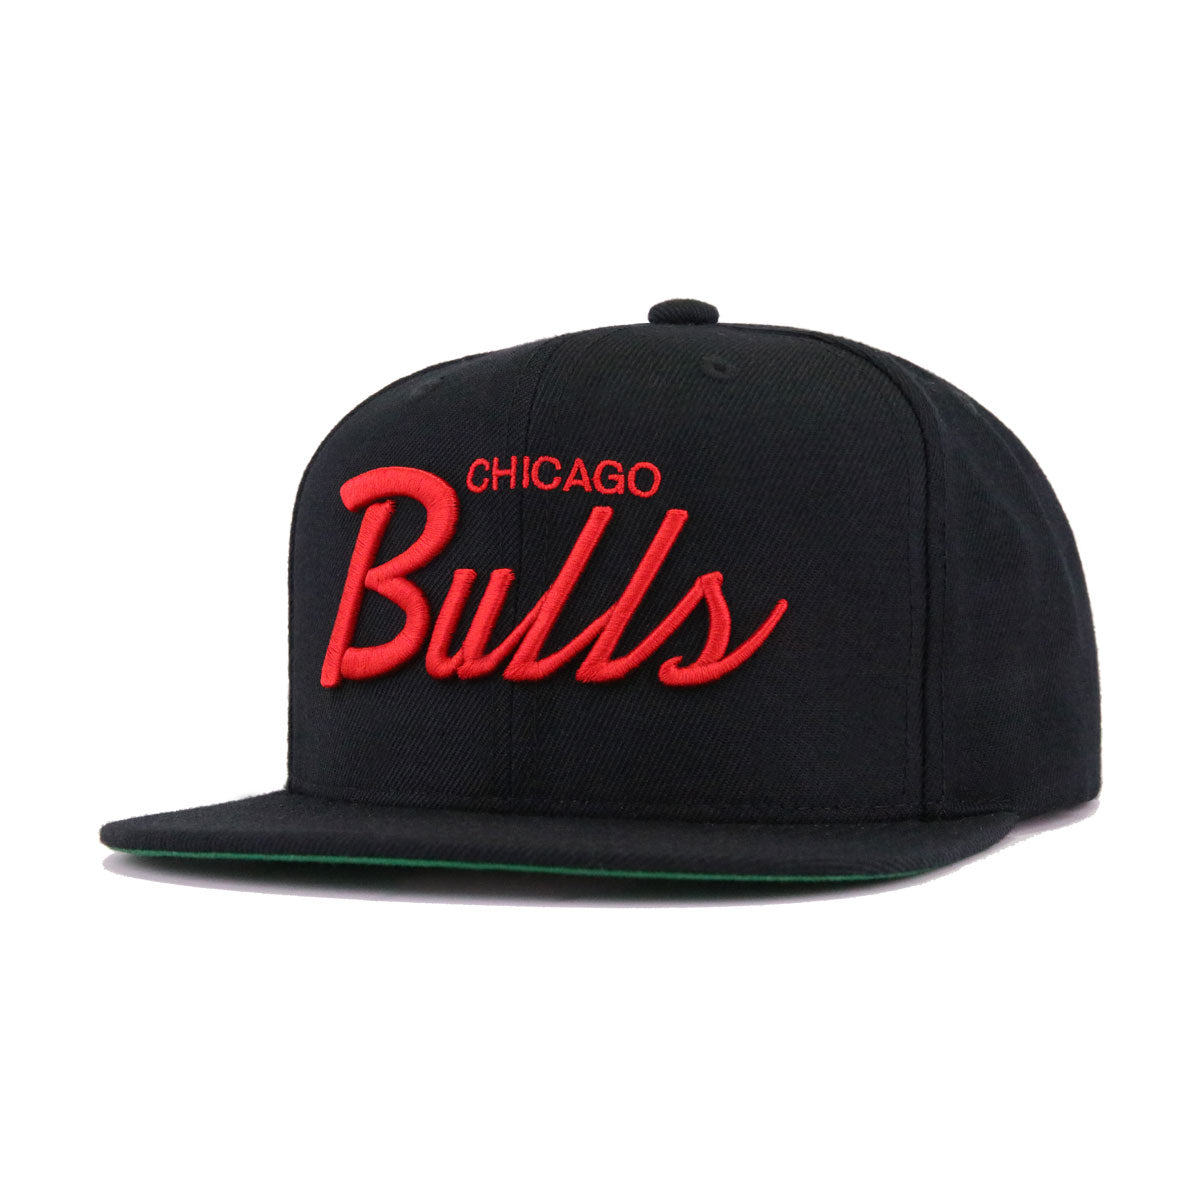 Chicago Bulls Black Scarlet Wordmark Mitchell and Ness Snapback